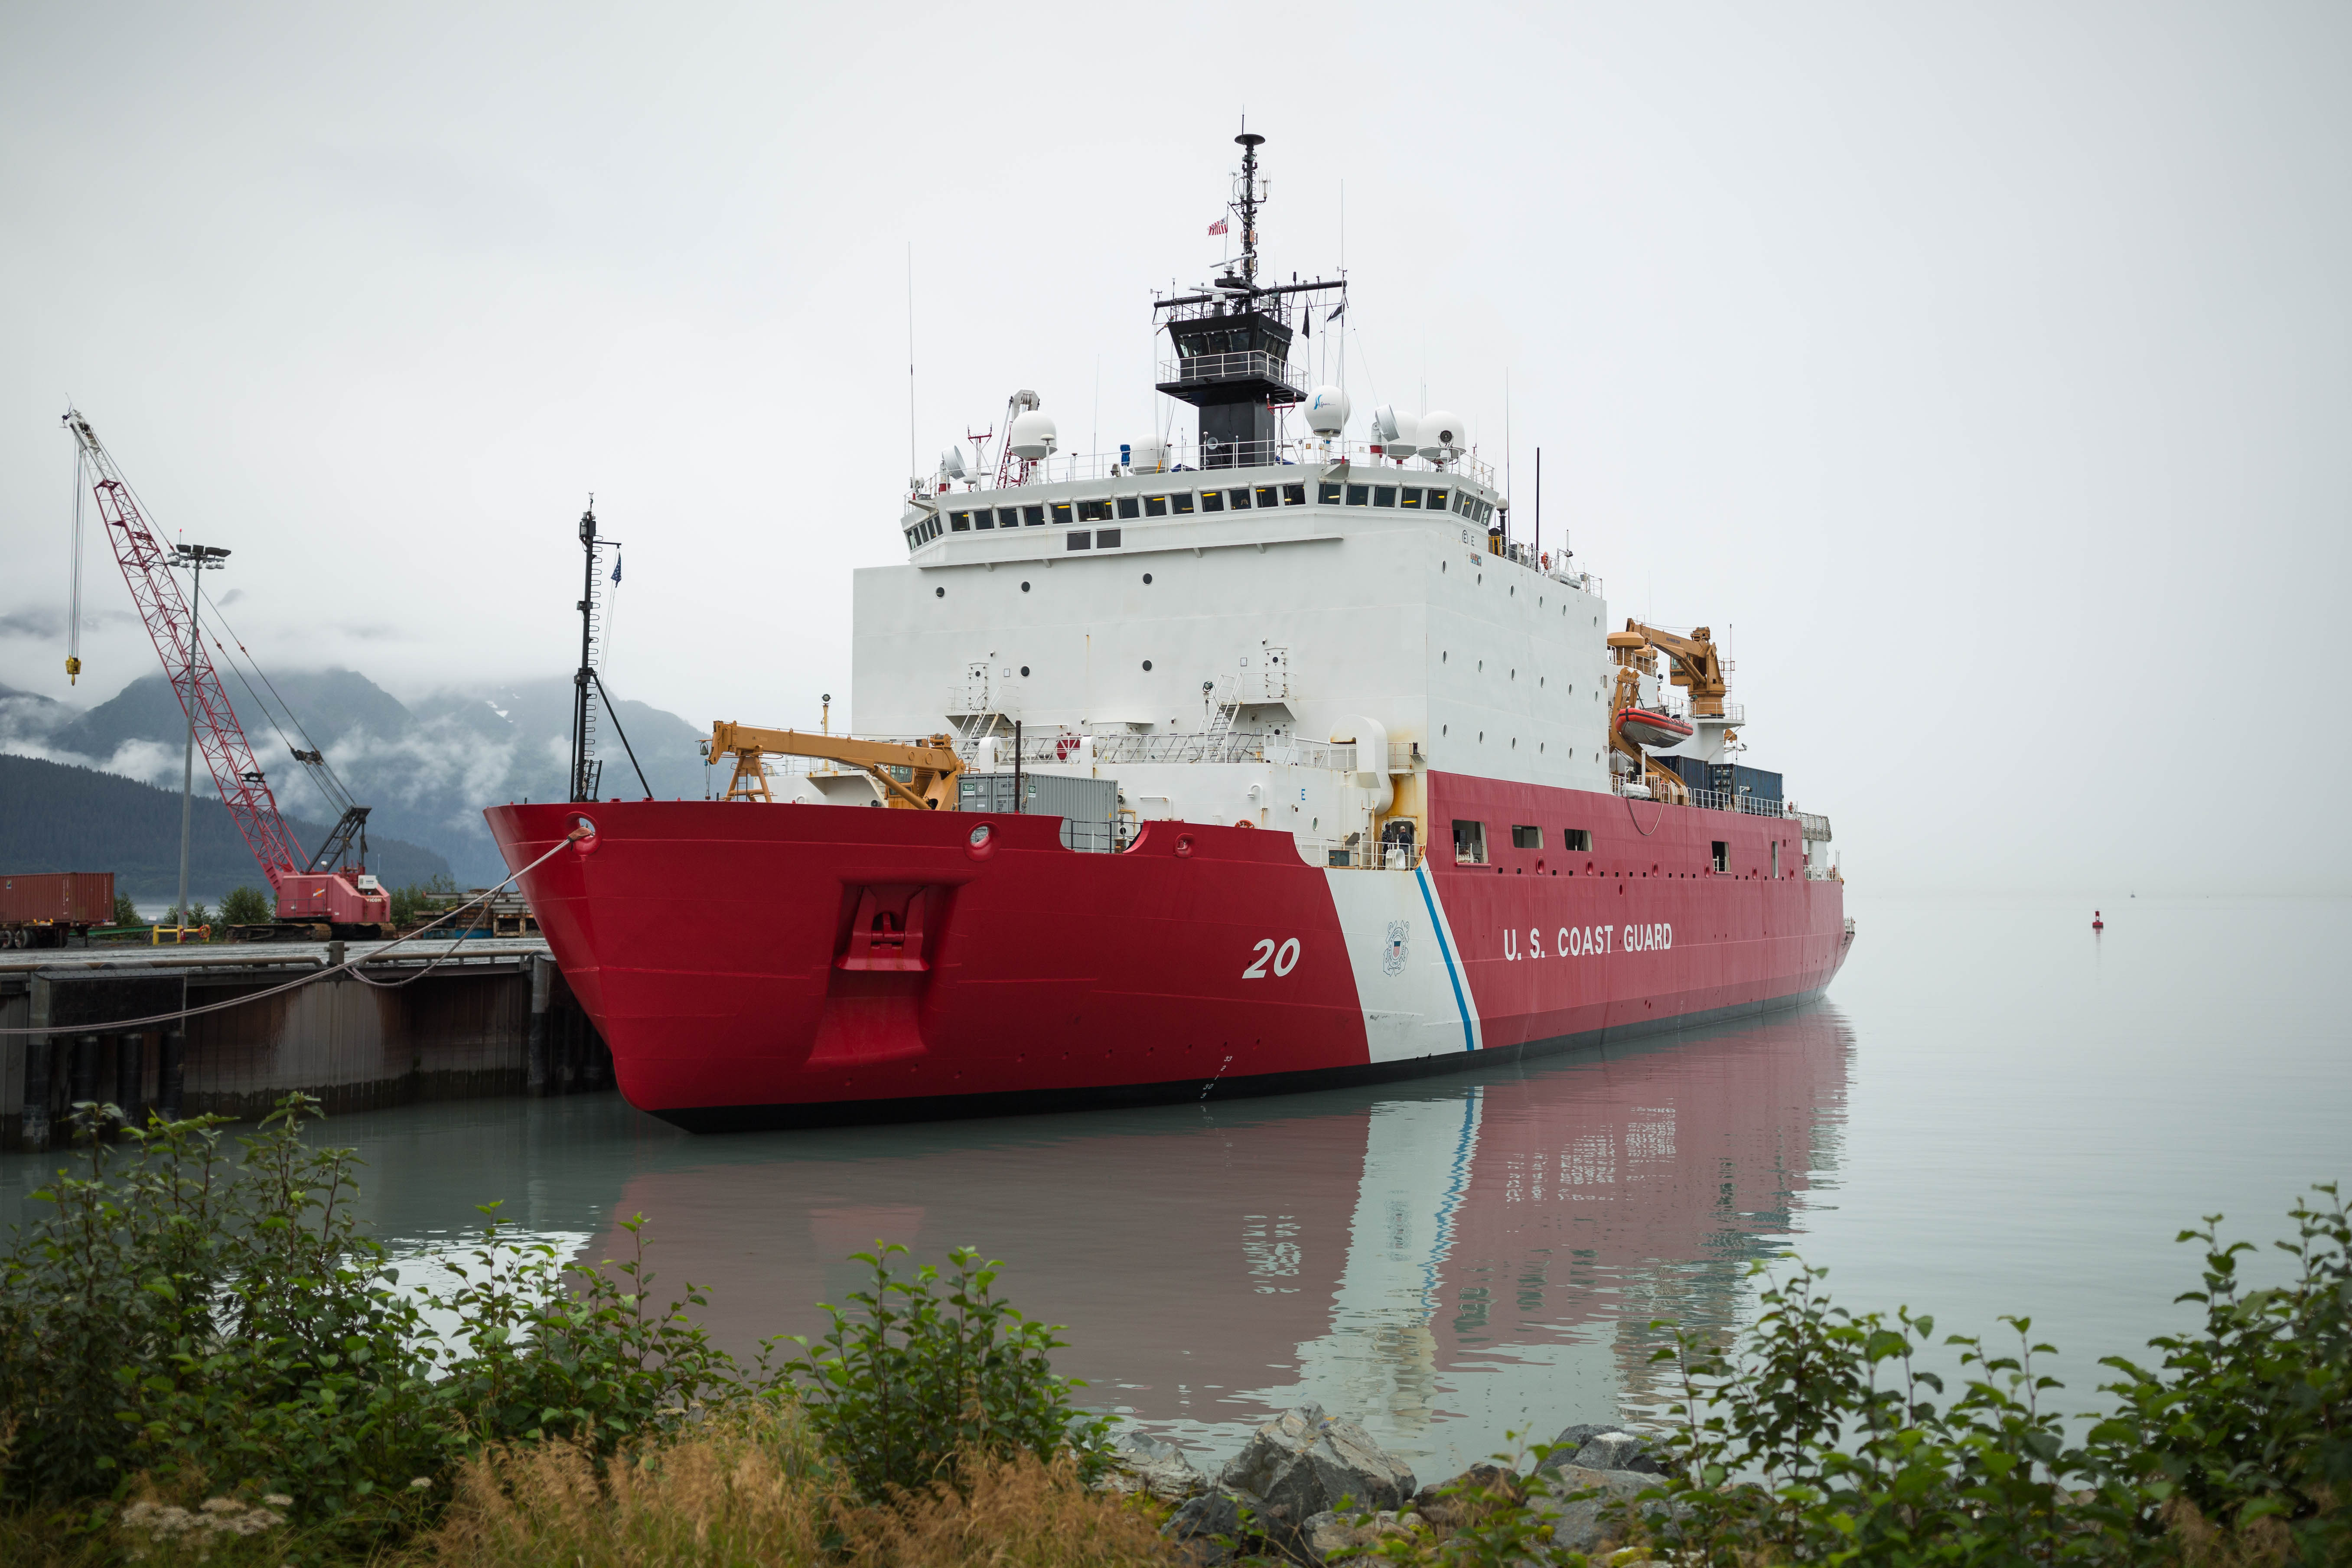 Alaska Senators Murkowski and Sullivan say no to Coast Guard cuts proposed by White House